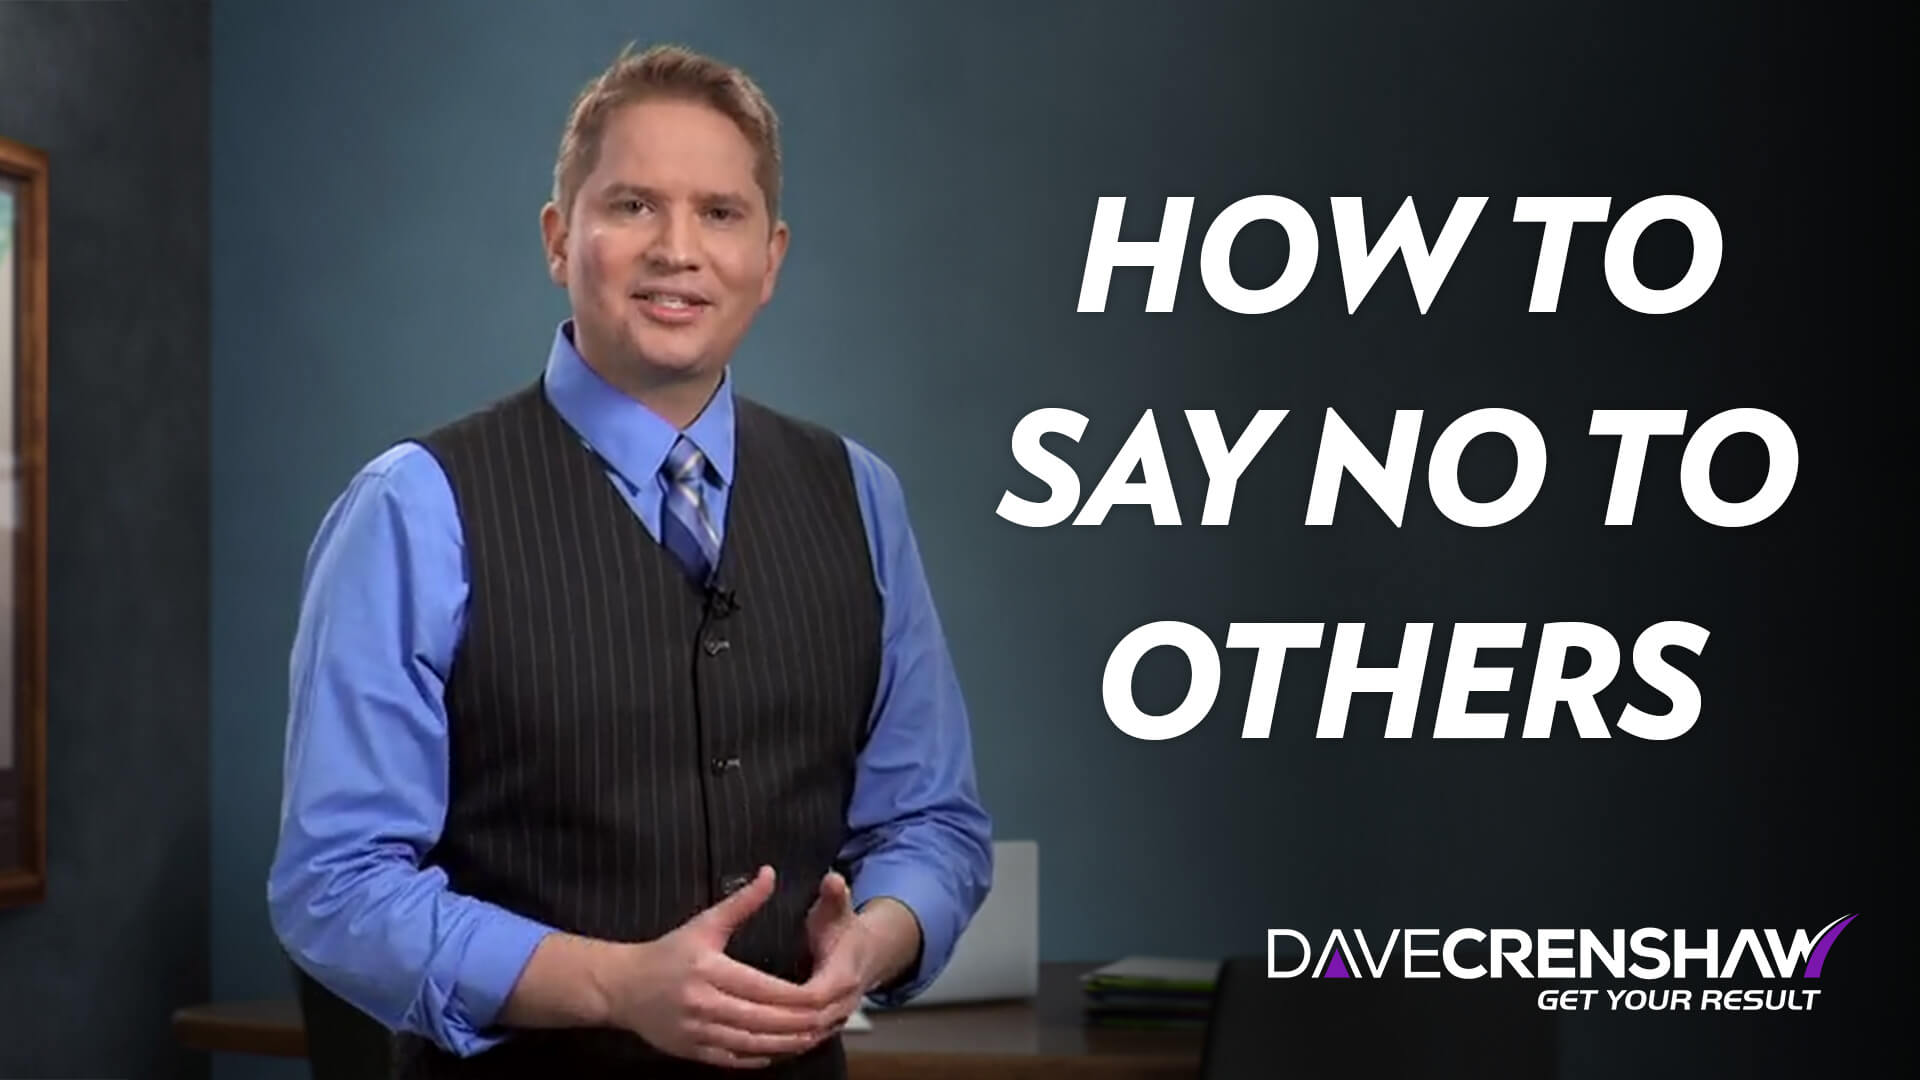 How to Say No to Others